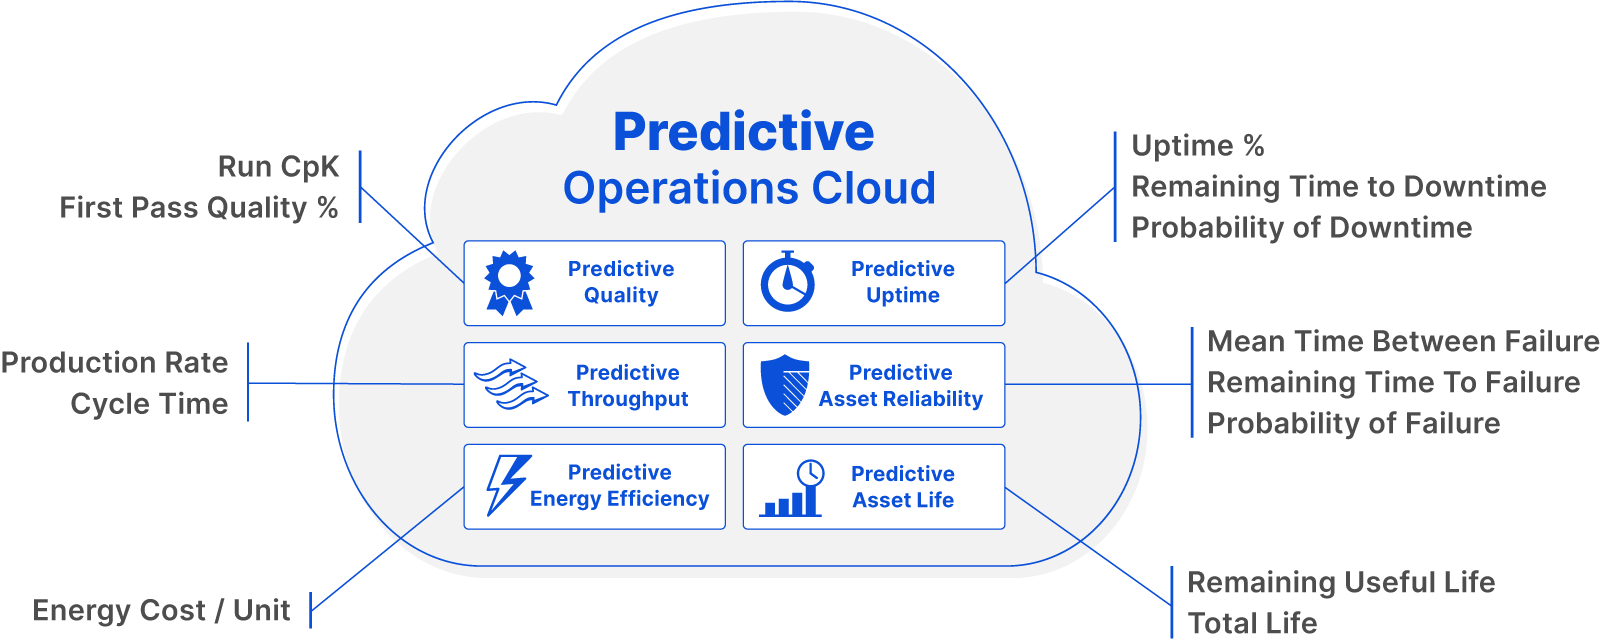 Our Predictive Operations Cloud consists of Predictive Quality, Predictive Uptime, Predictive Throughput, Predictive Asset Reliability, Predictive Energy Efficiency, and Predictive Asset Life. With these predictive applications, you can solve for a variety of equipment-based metrics.